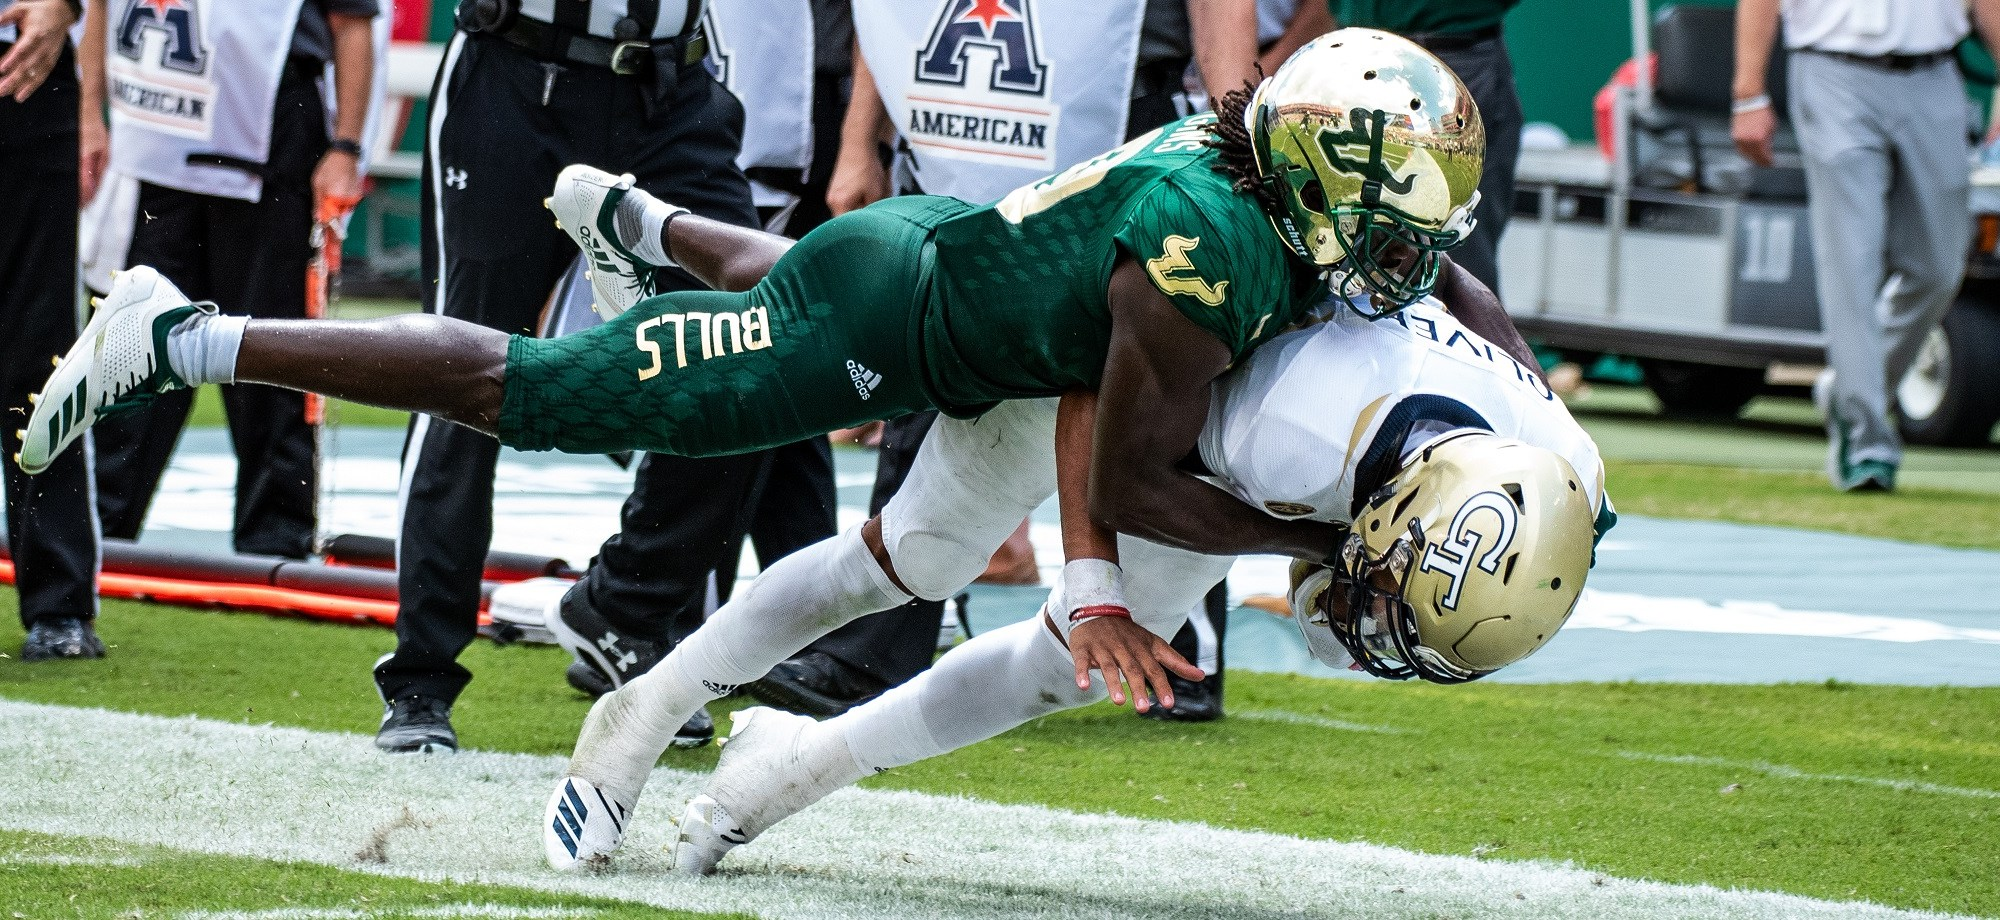 📌 Georgia Tech vs. USF 2018 Football Photo Album Featured Image by Dennis Akers (2400x920)